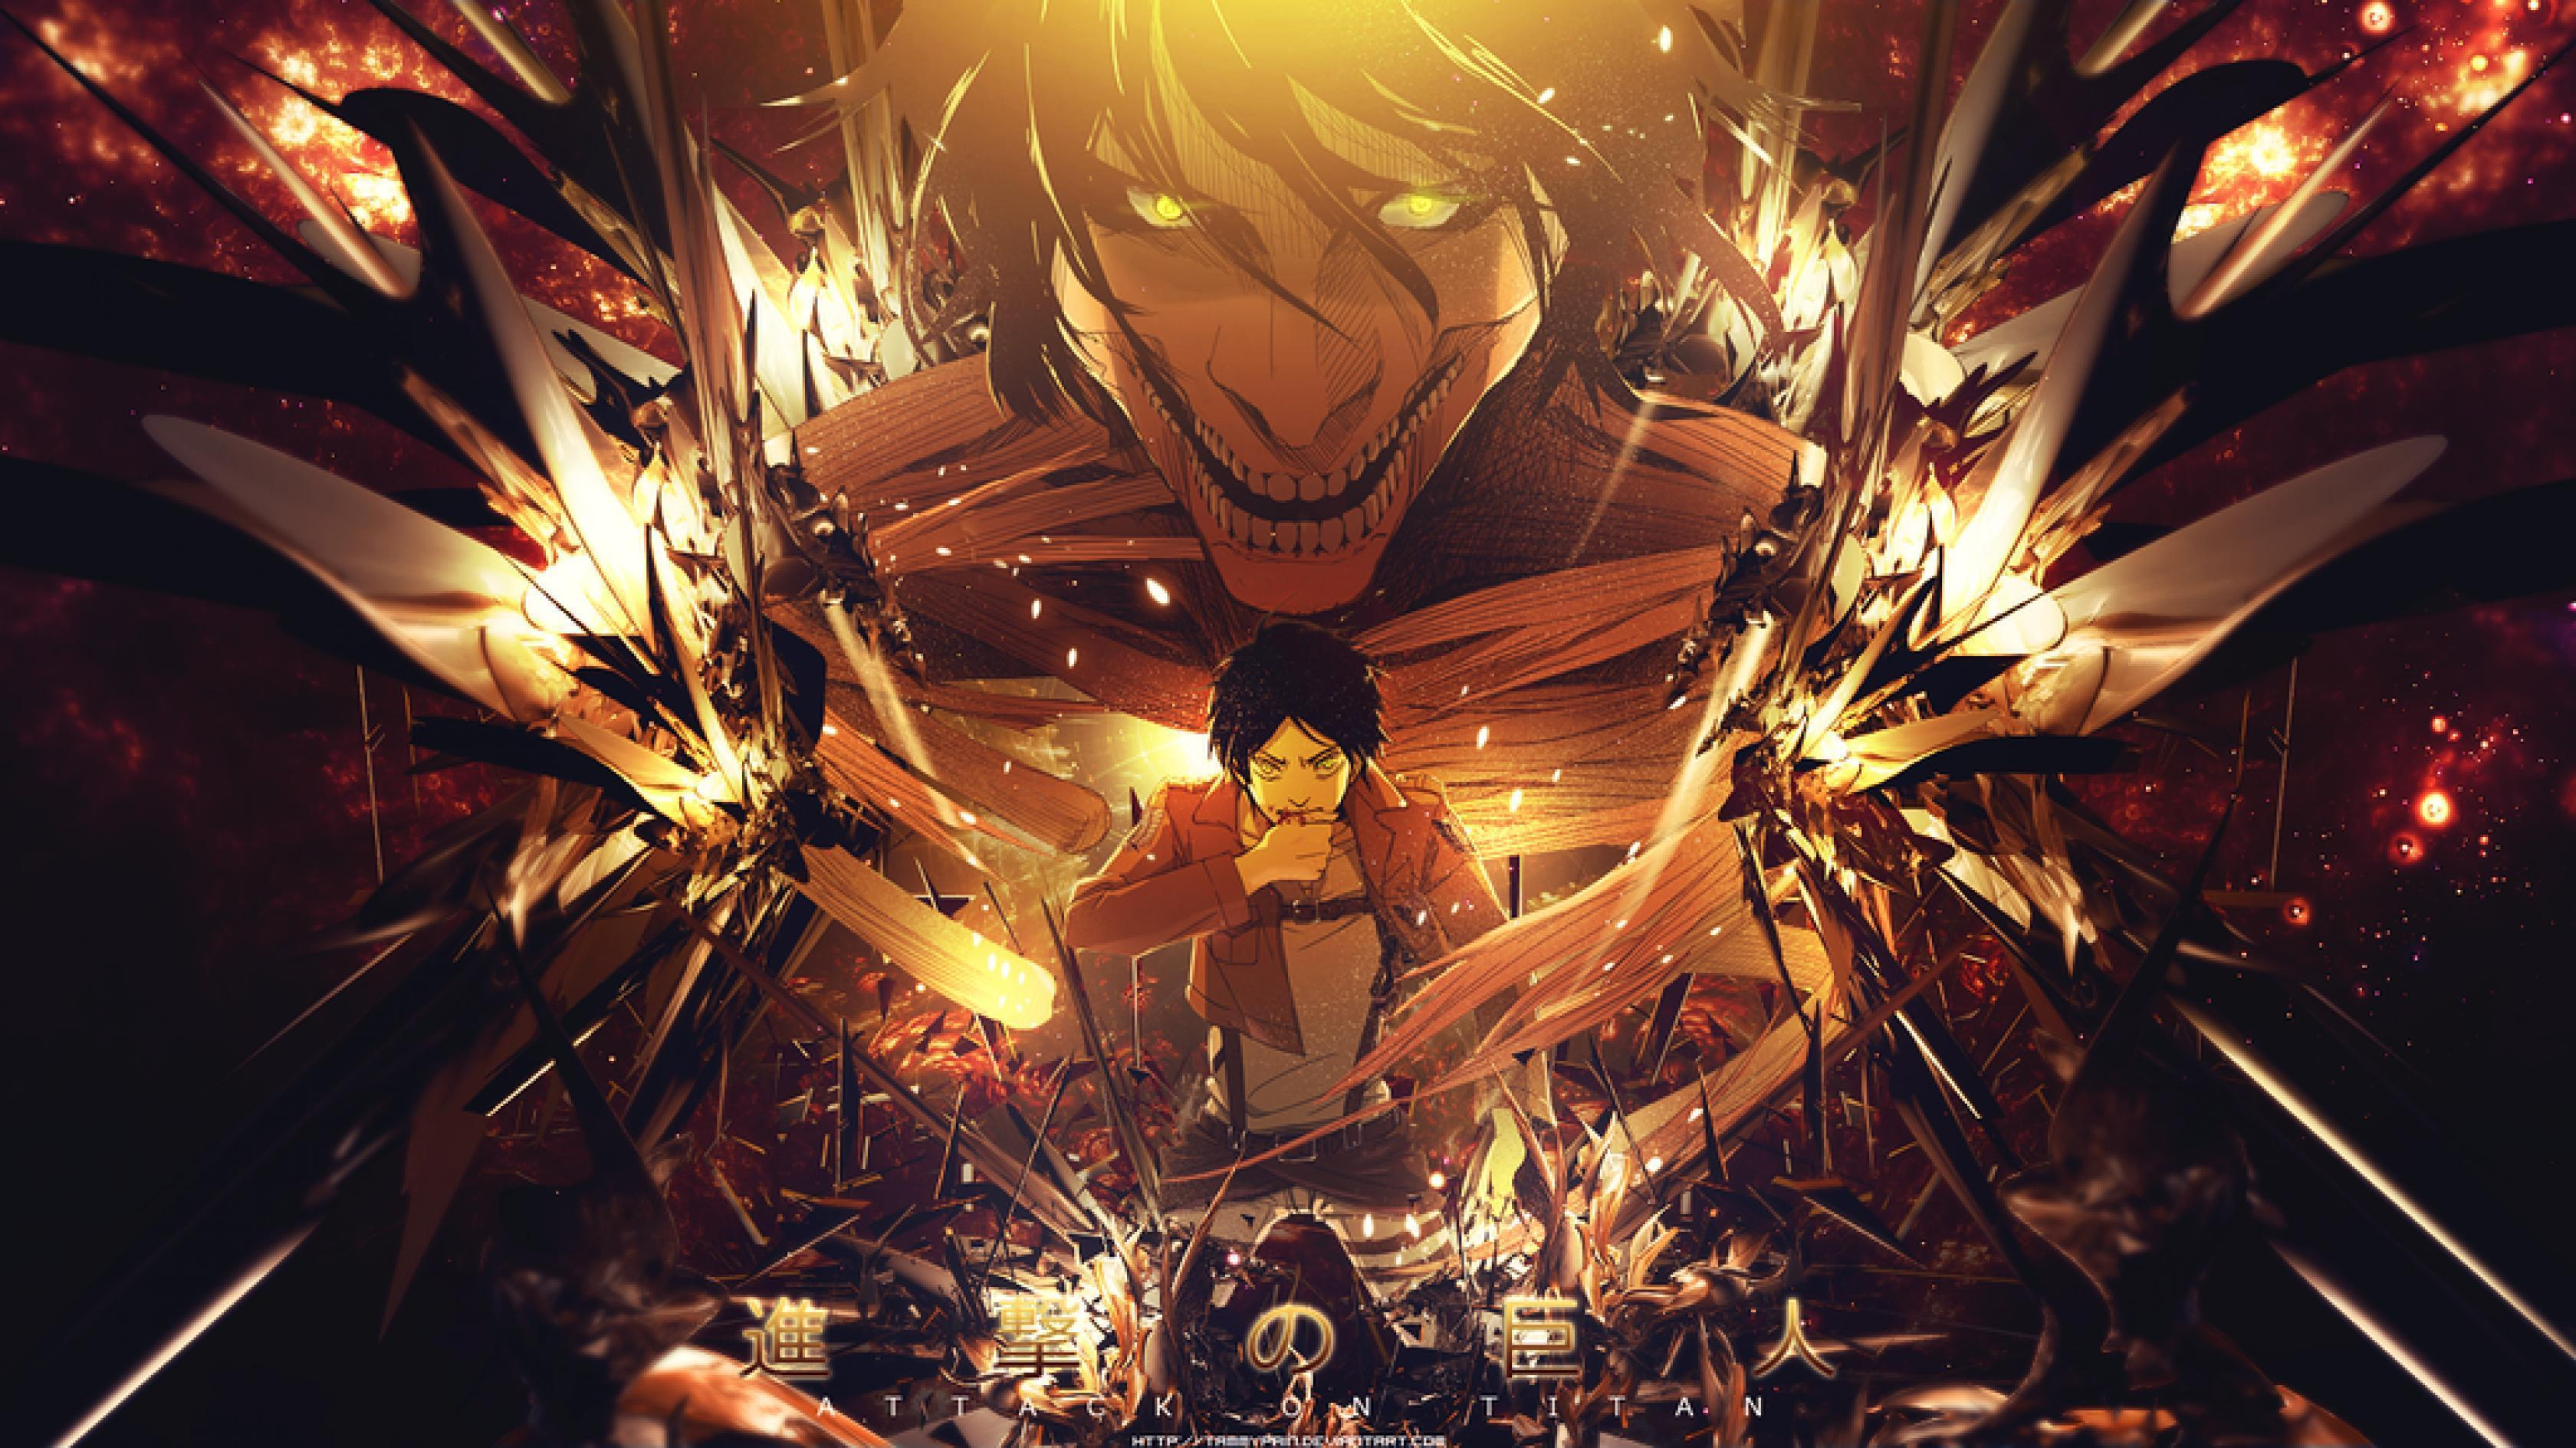 Colossal man eating titans await! Attack On Titan HD Wallpapers FREE Pictures on GreePX